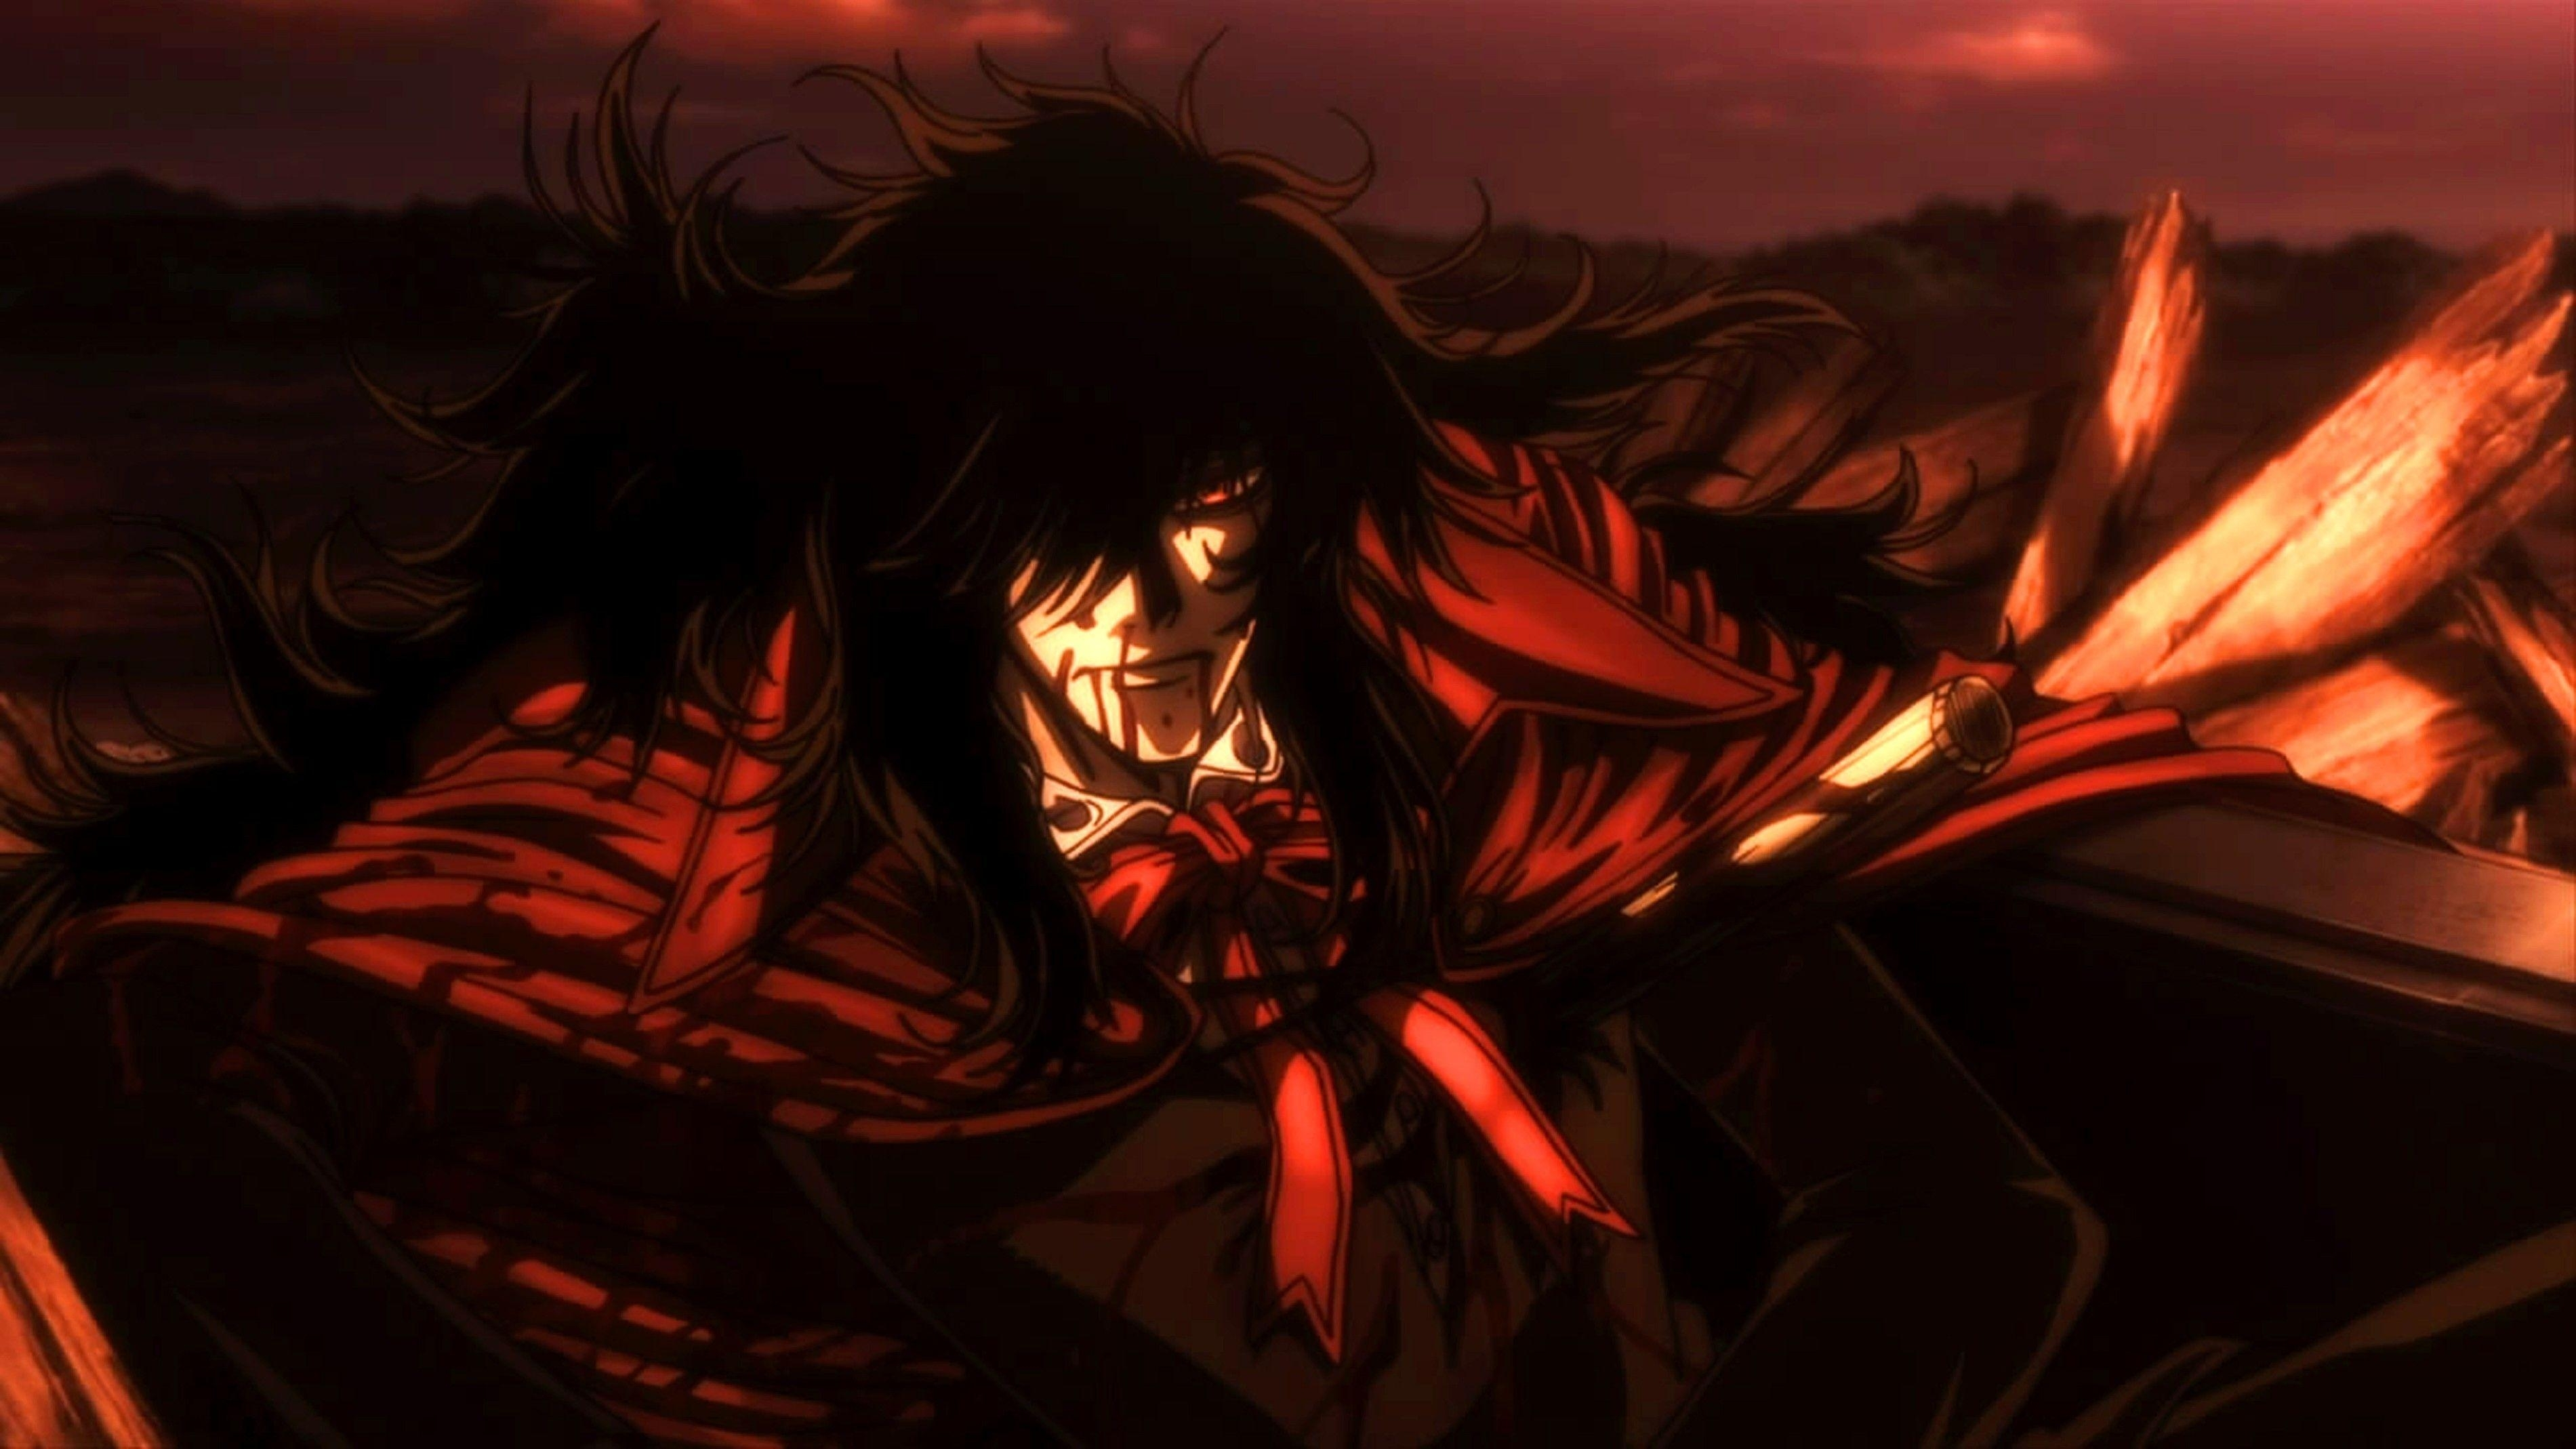 hellsing ultimate wallpapers - wallpaper cave